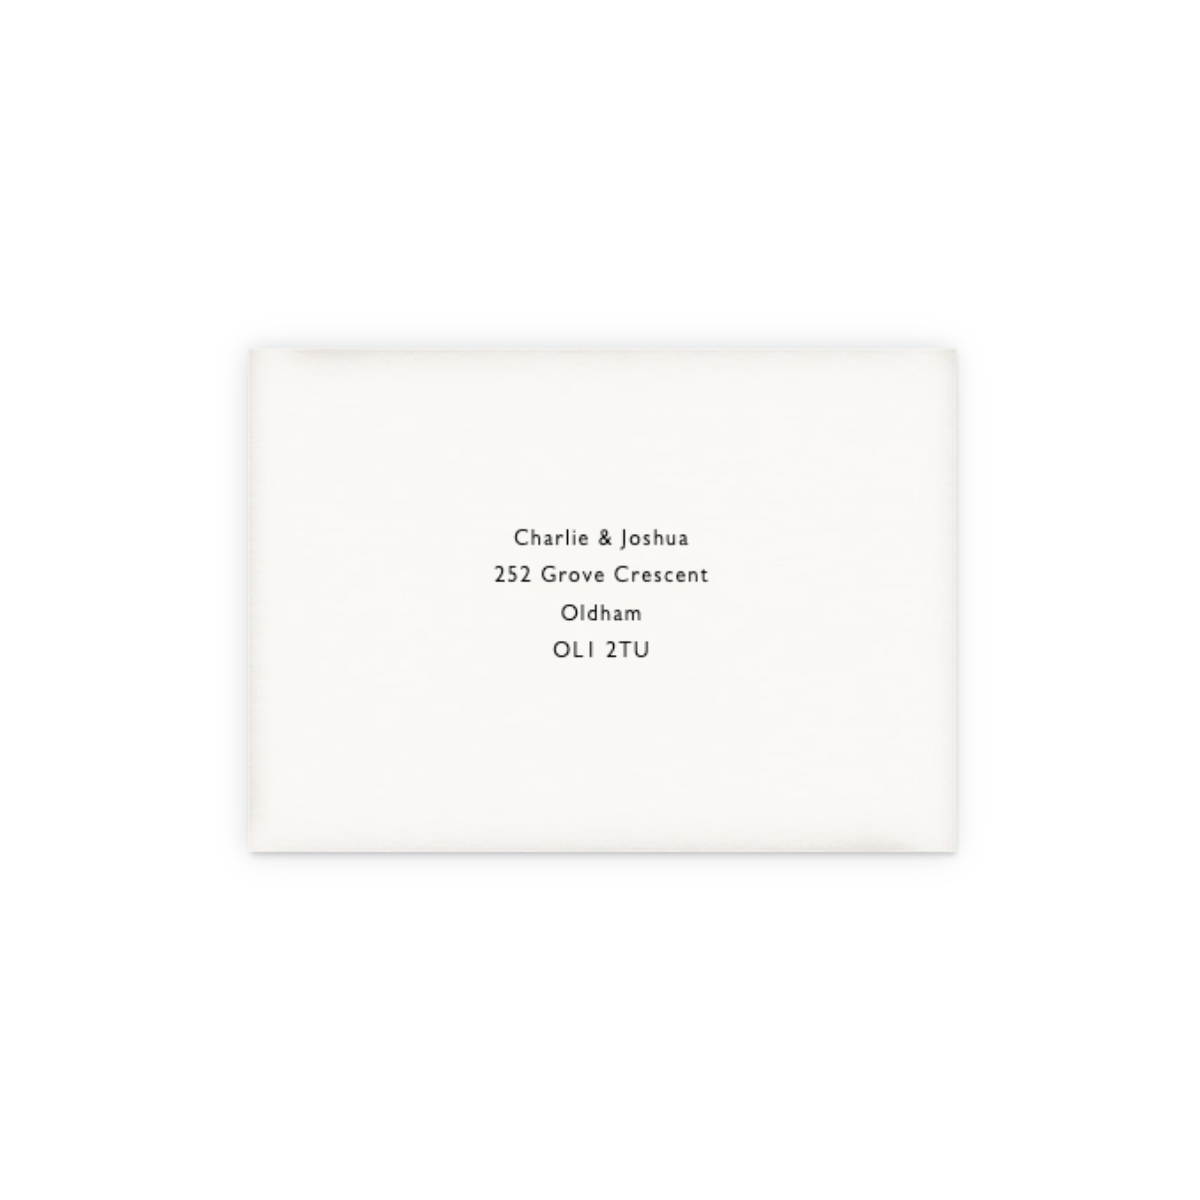 Https%3a%2f%2fwww.papier.com%2fproduct image%2f22719%2f12%2fclassic thin border gold 5704 rsvp envelope 1535553971.png?ixlib=rb 1.1